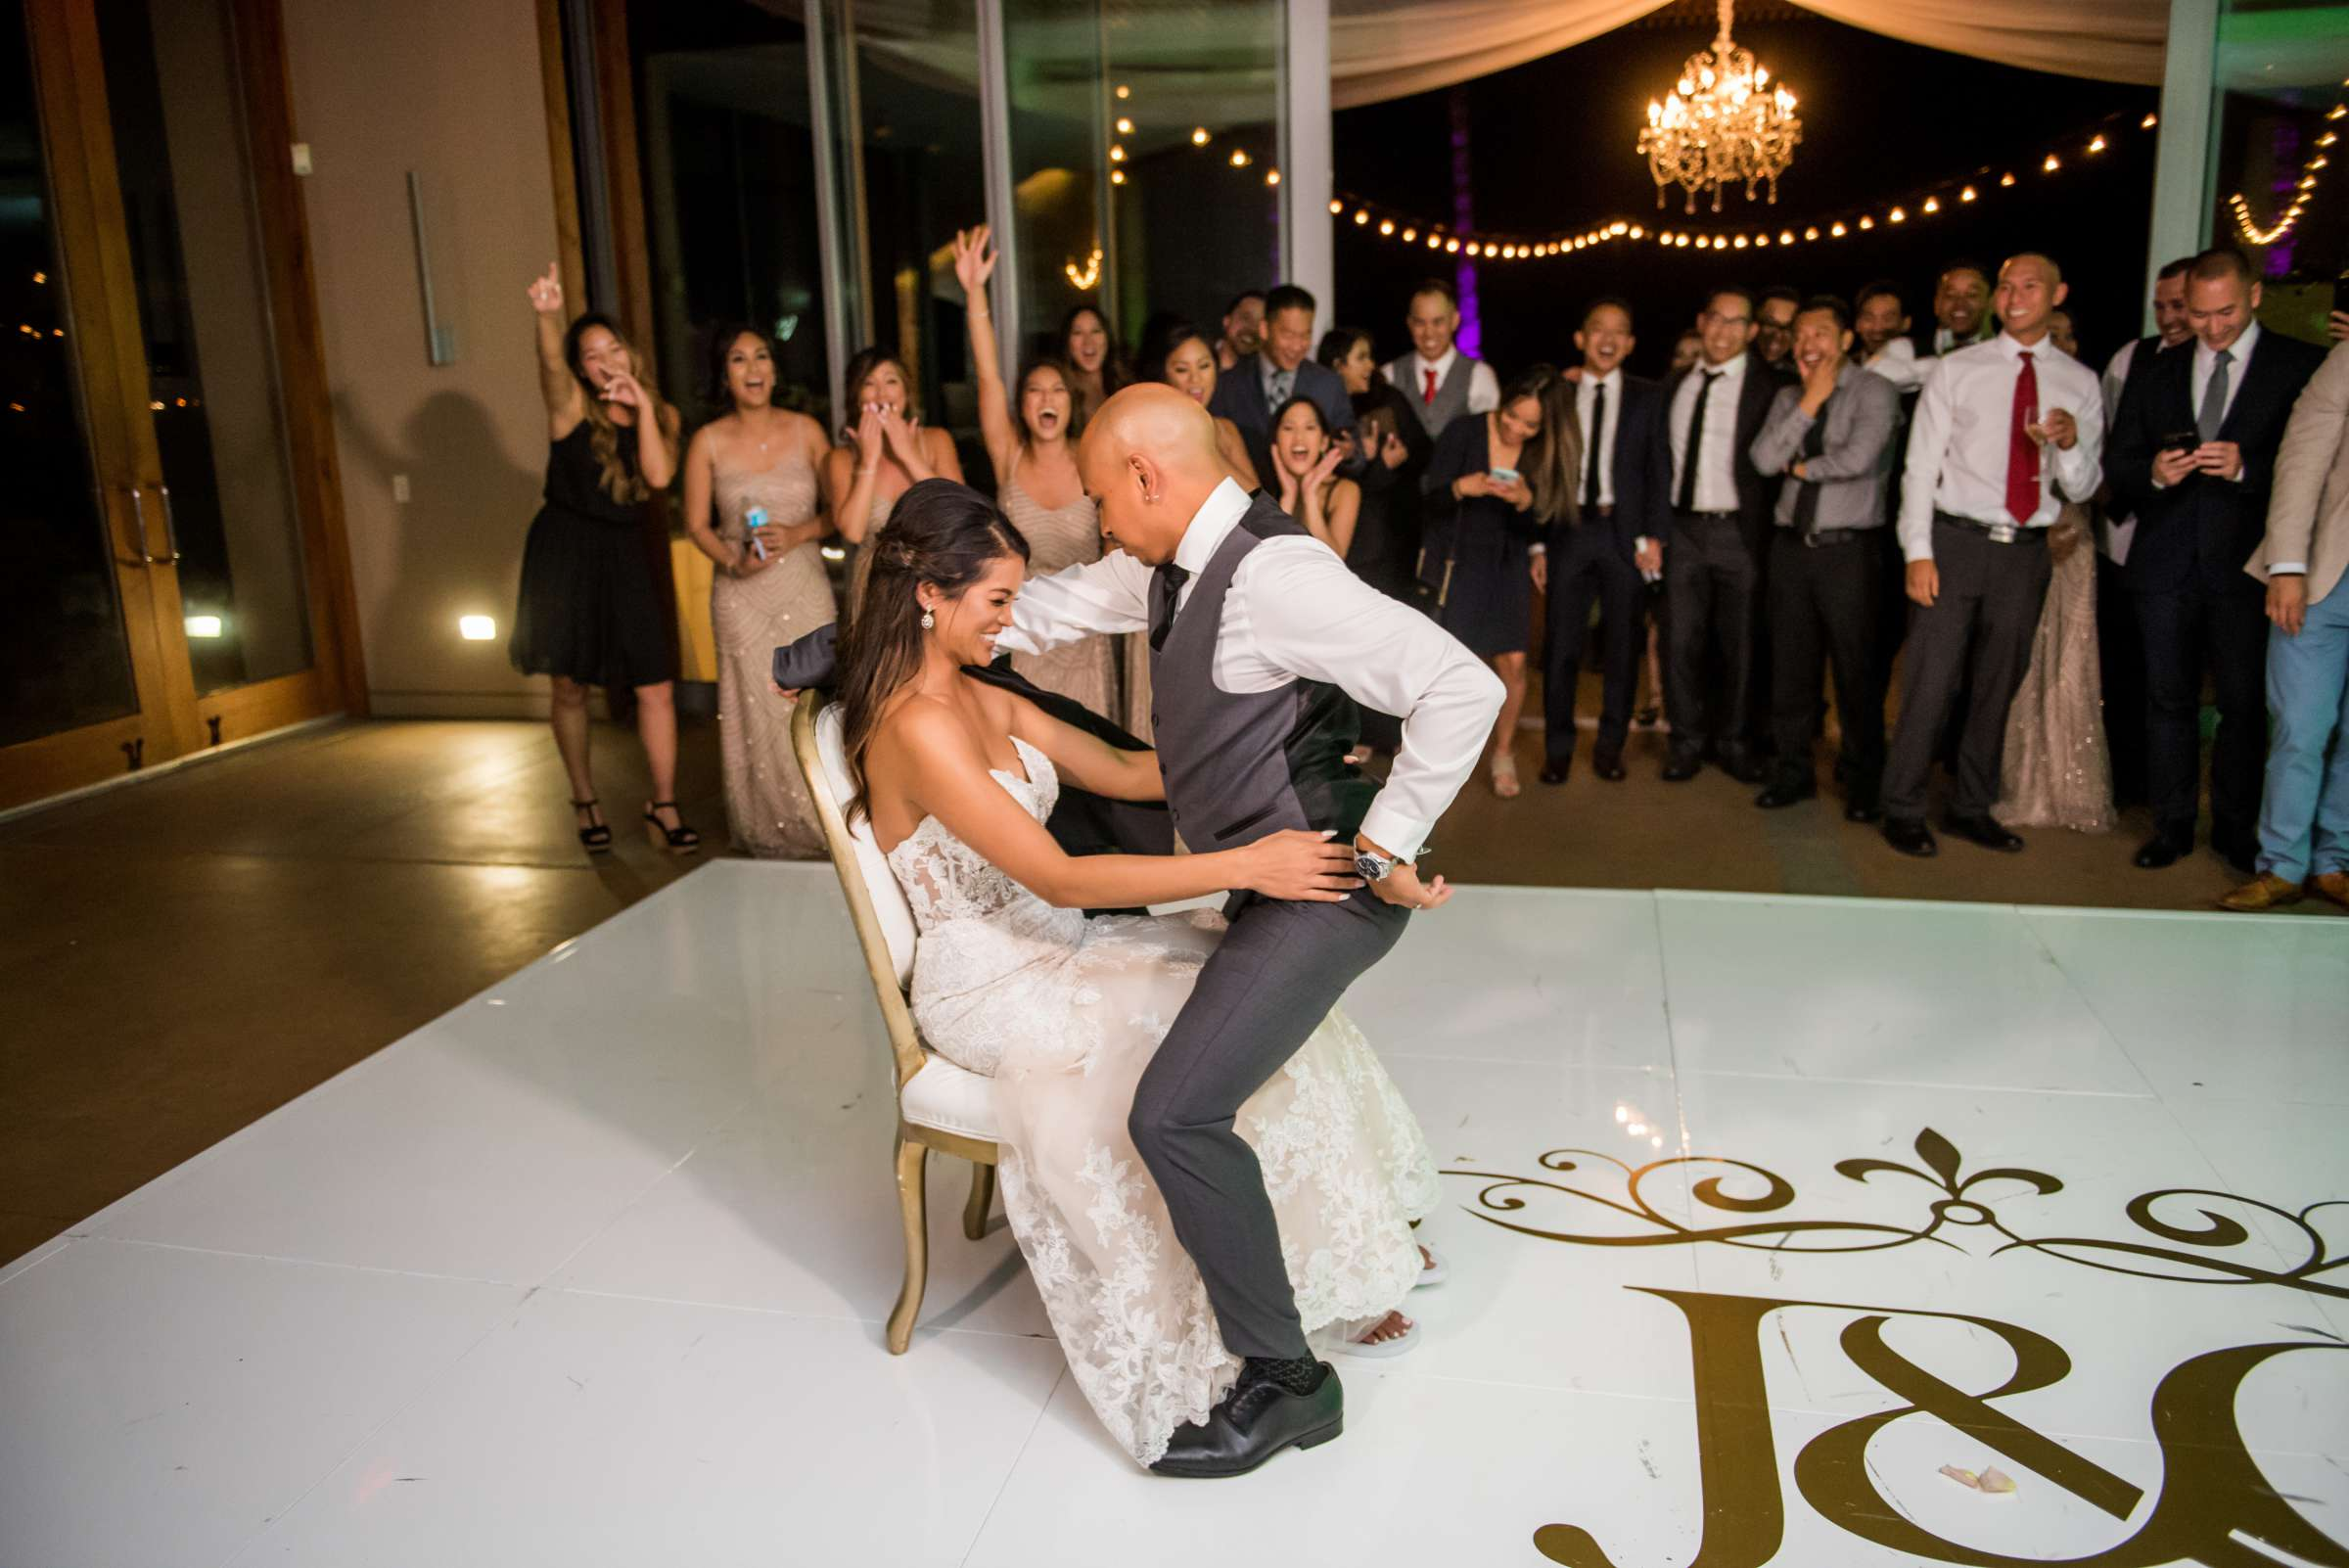 Scripps Seaside Forum Wedding coordinated by Lavish Weddings, Cindy and Justin Wedding Photo #381885 by True Photography